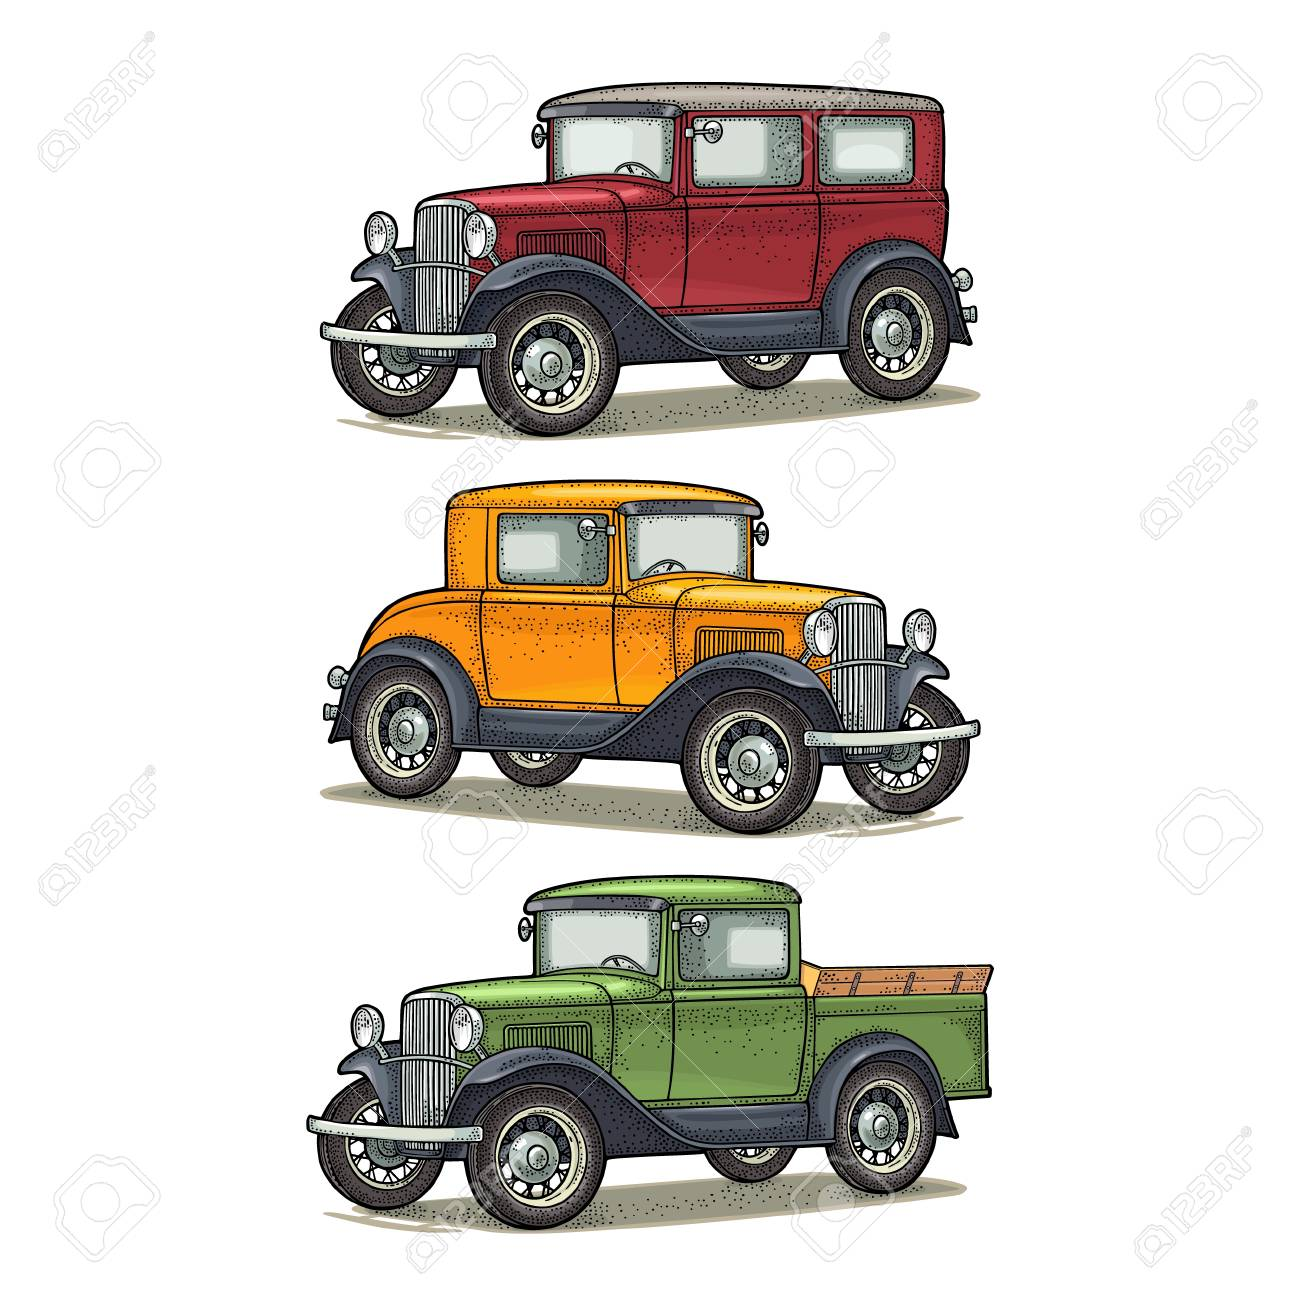 Retro Car Sedan Coupe And Pickup Truck Side View Vintage Color Royalty Free Cliparts Vectors And Stock Illustration Image 127343590